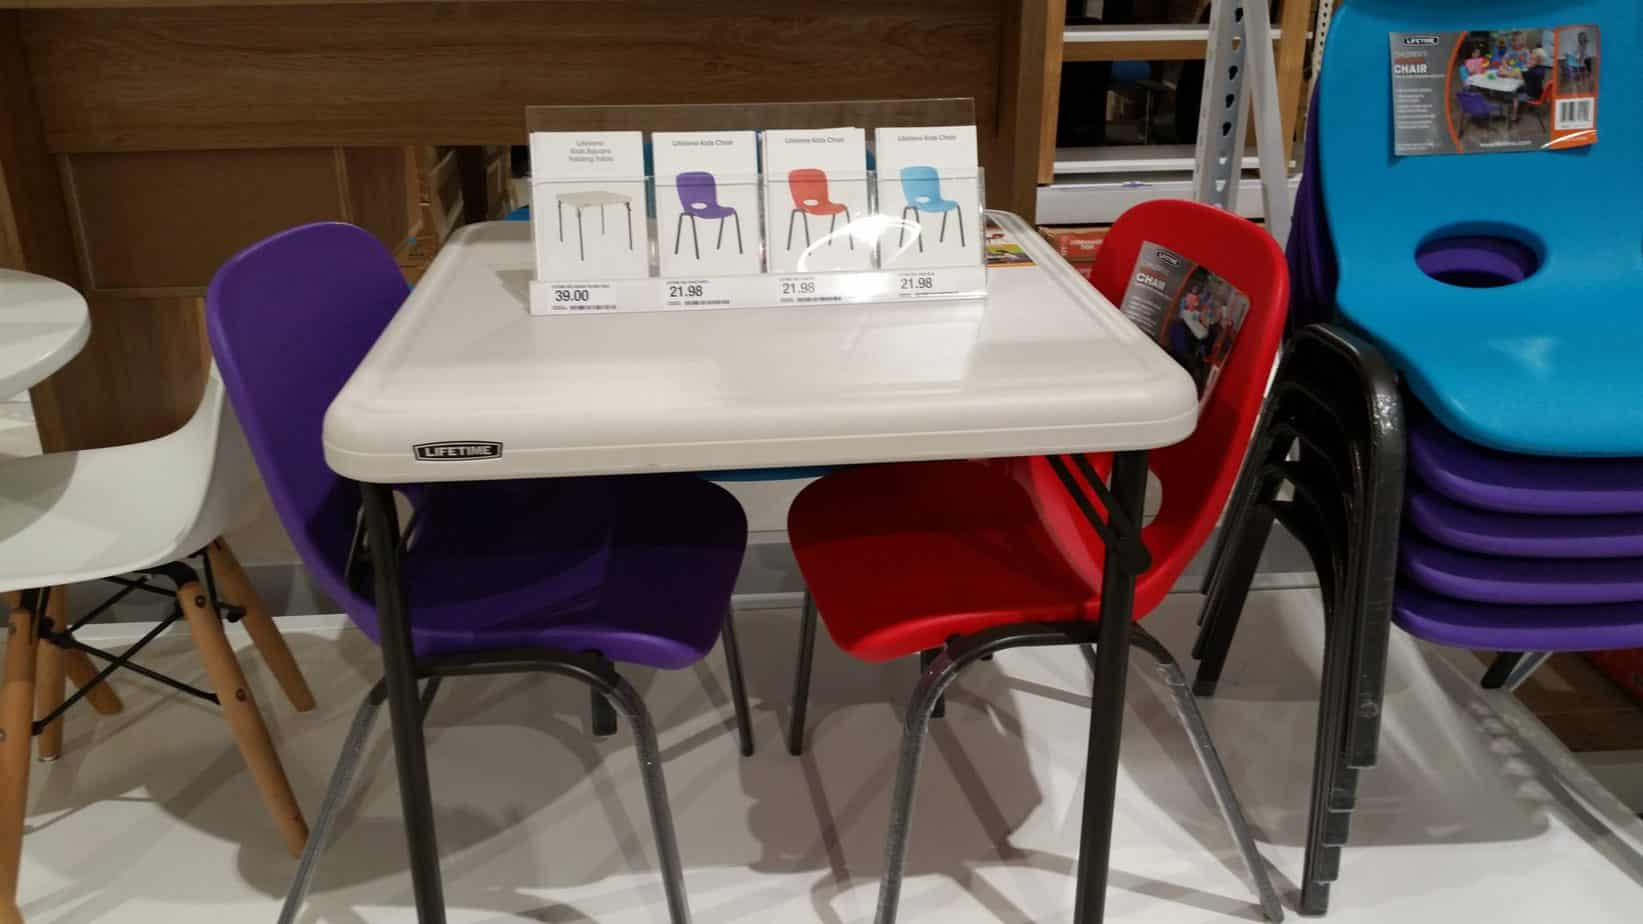 Miniature Homeschool Table and Chairs - a great option in a homeschool.